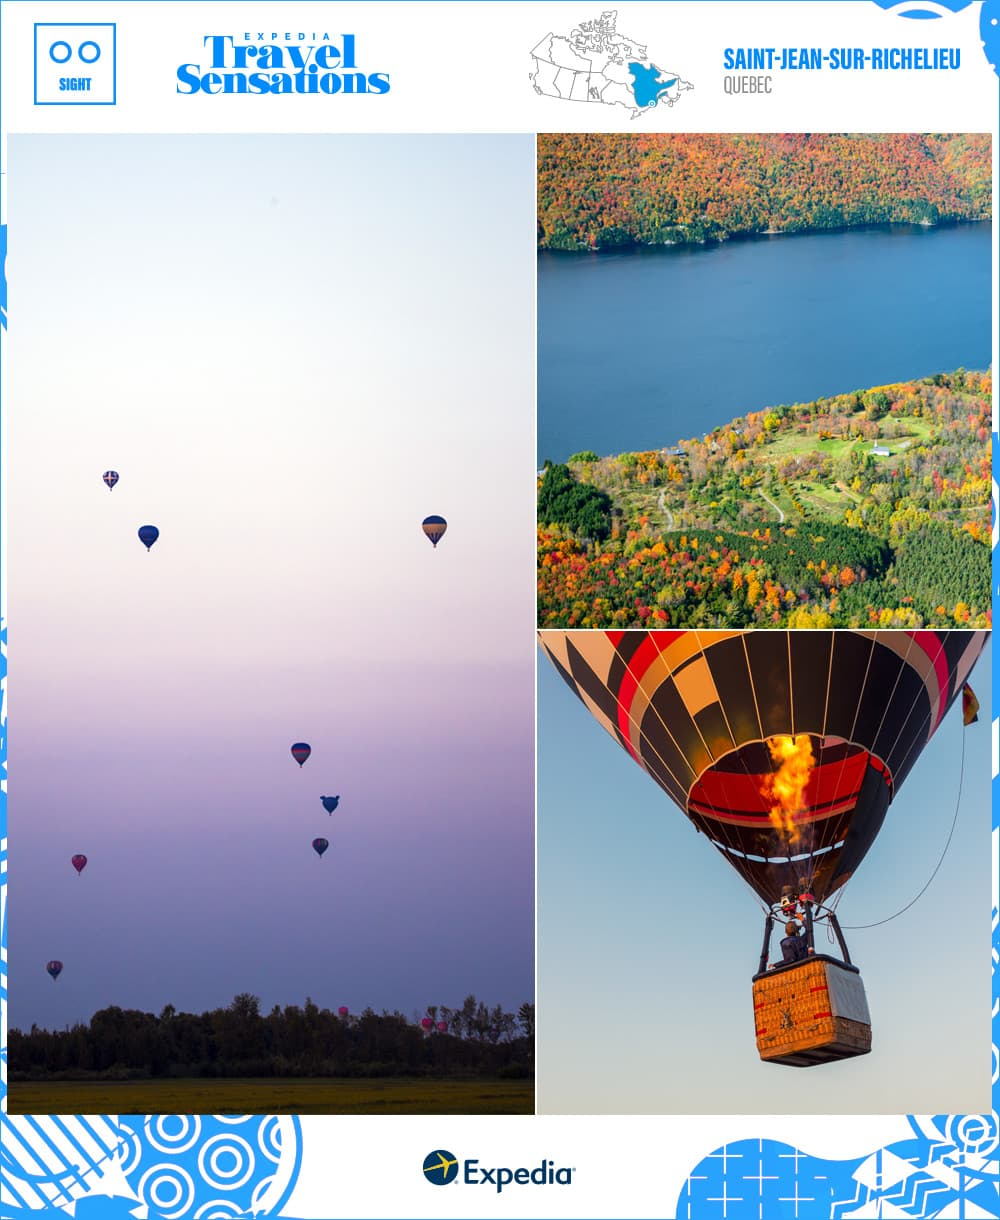 balloon festival in saint jean sur richelieu